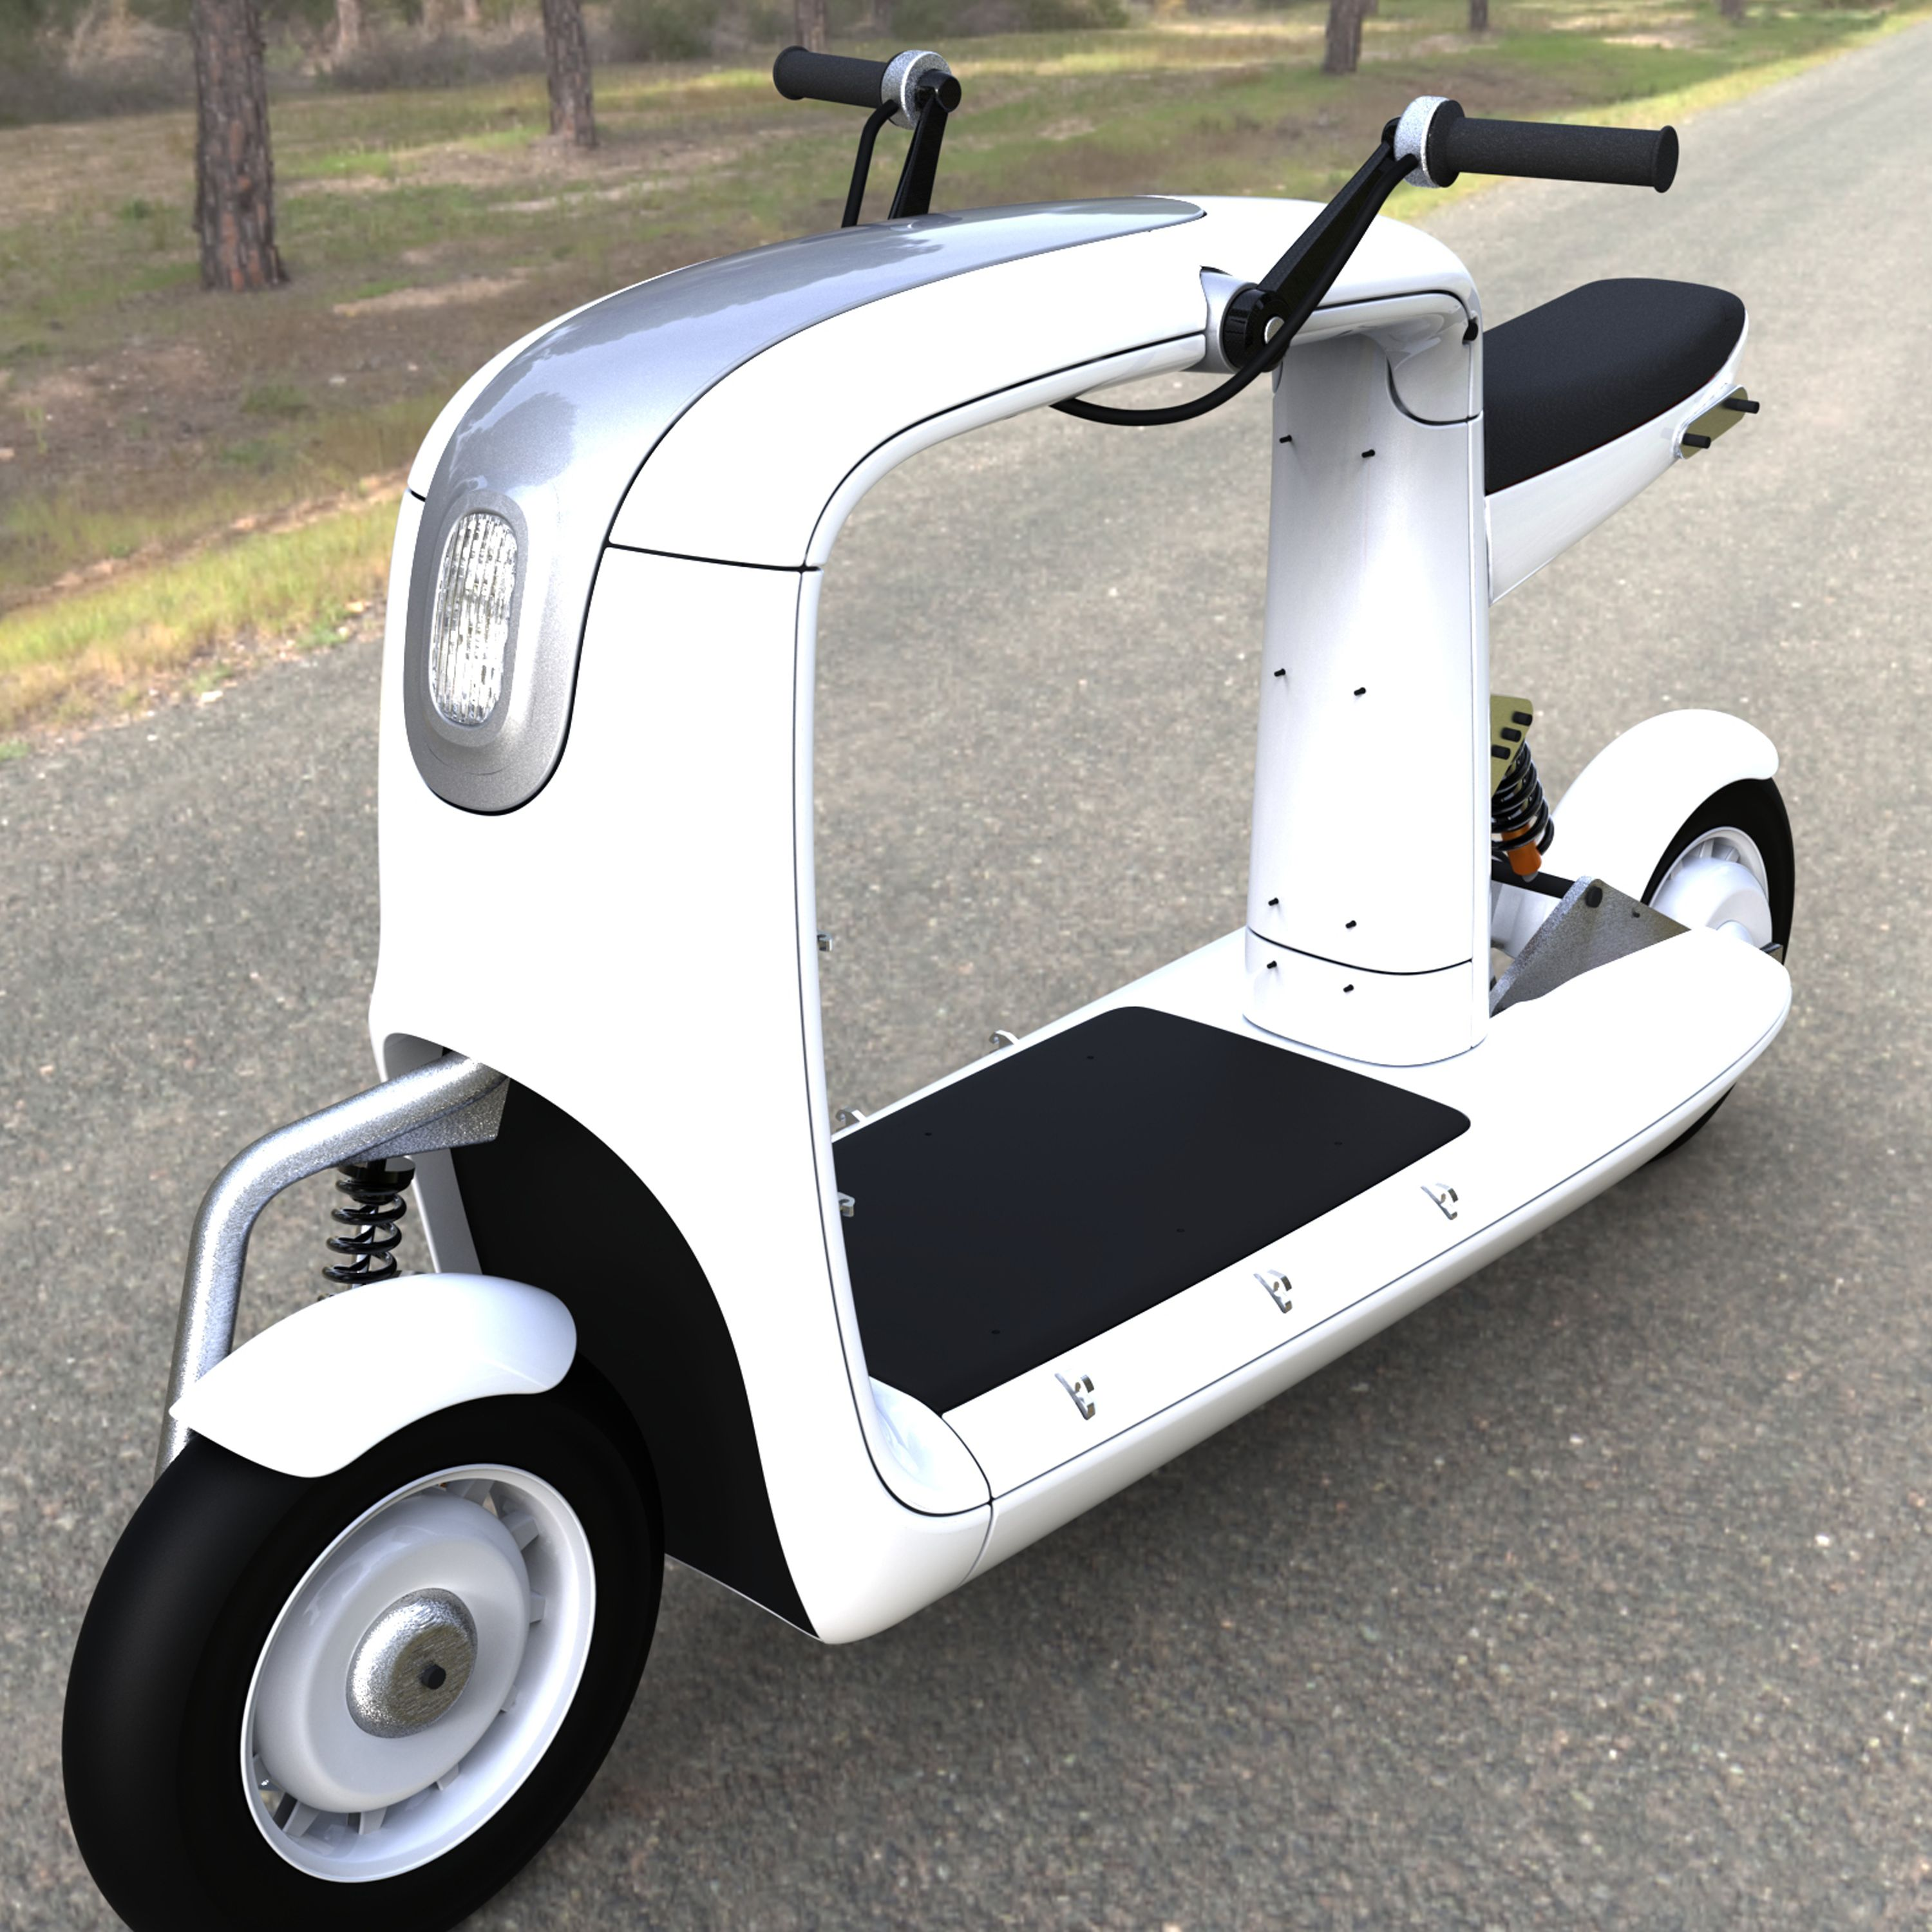 Our cargo scooter is also fully electric, and can carry a